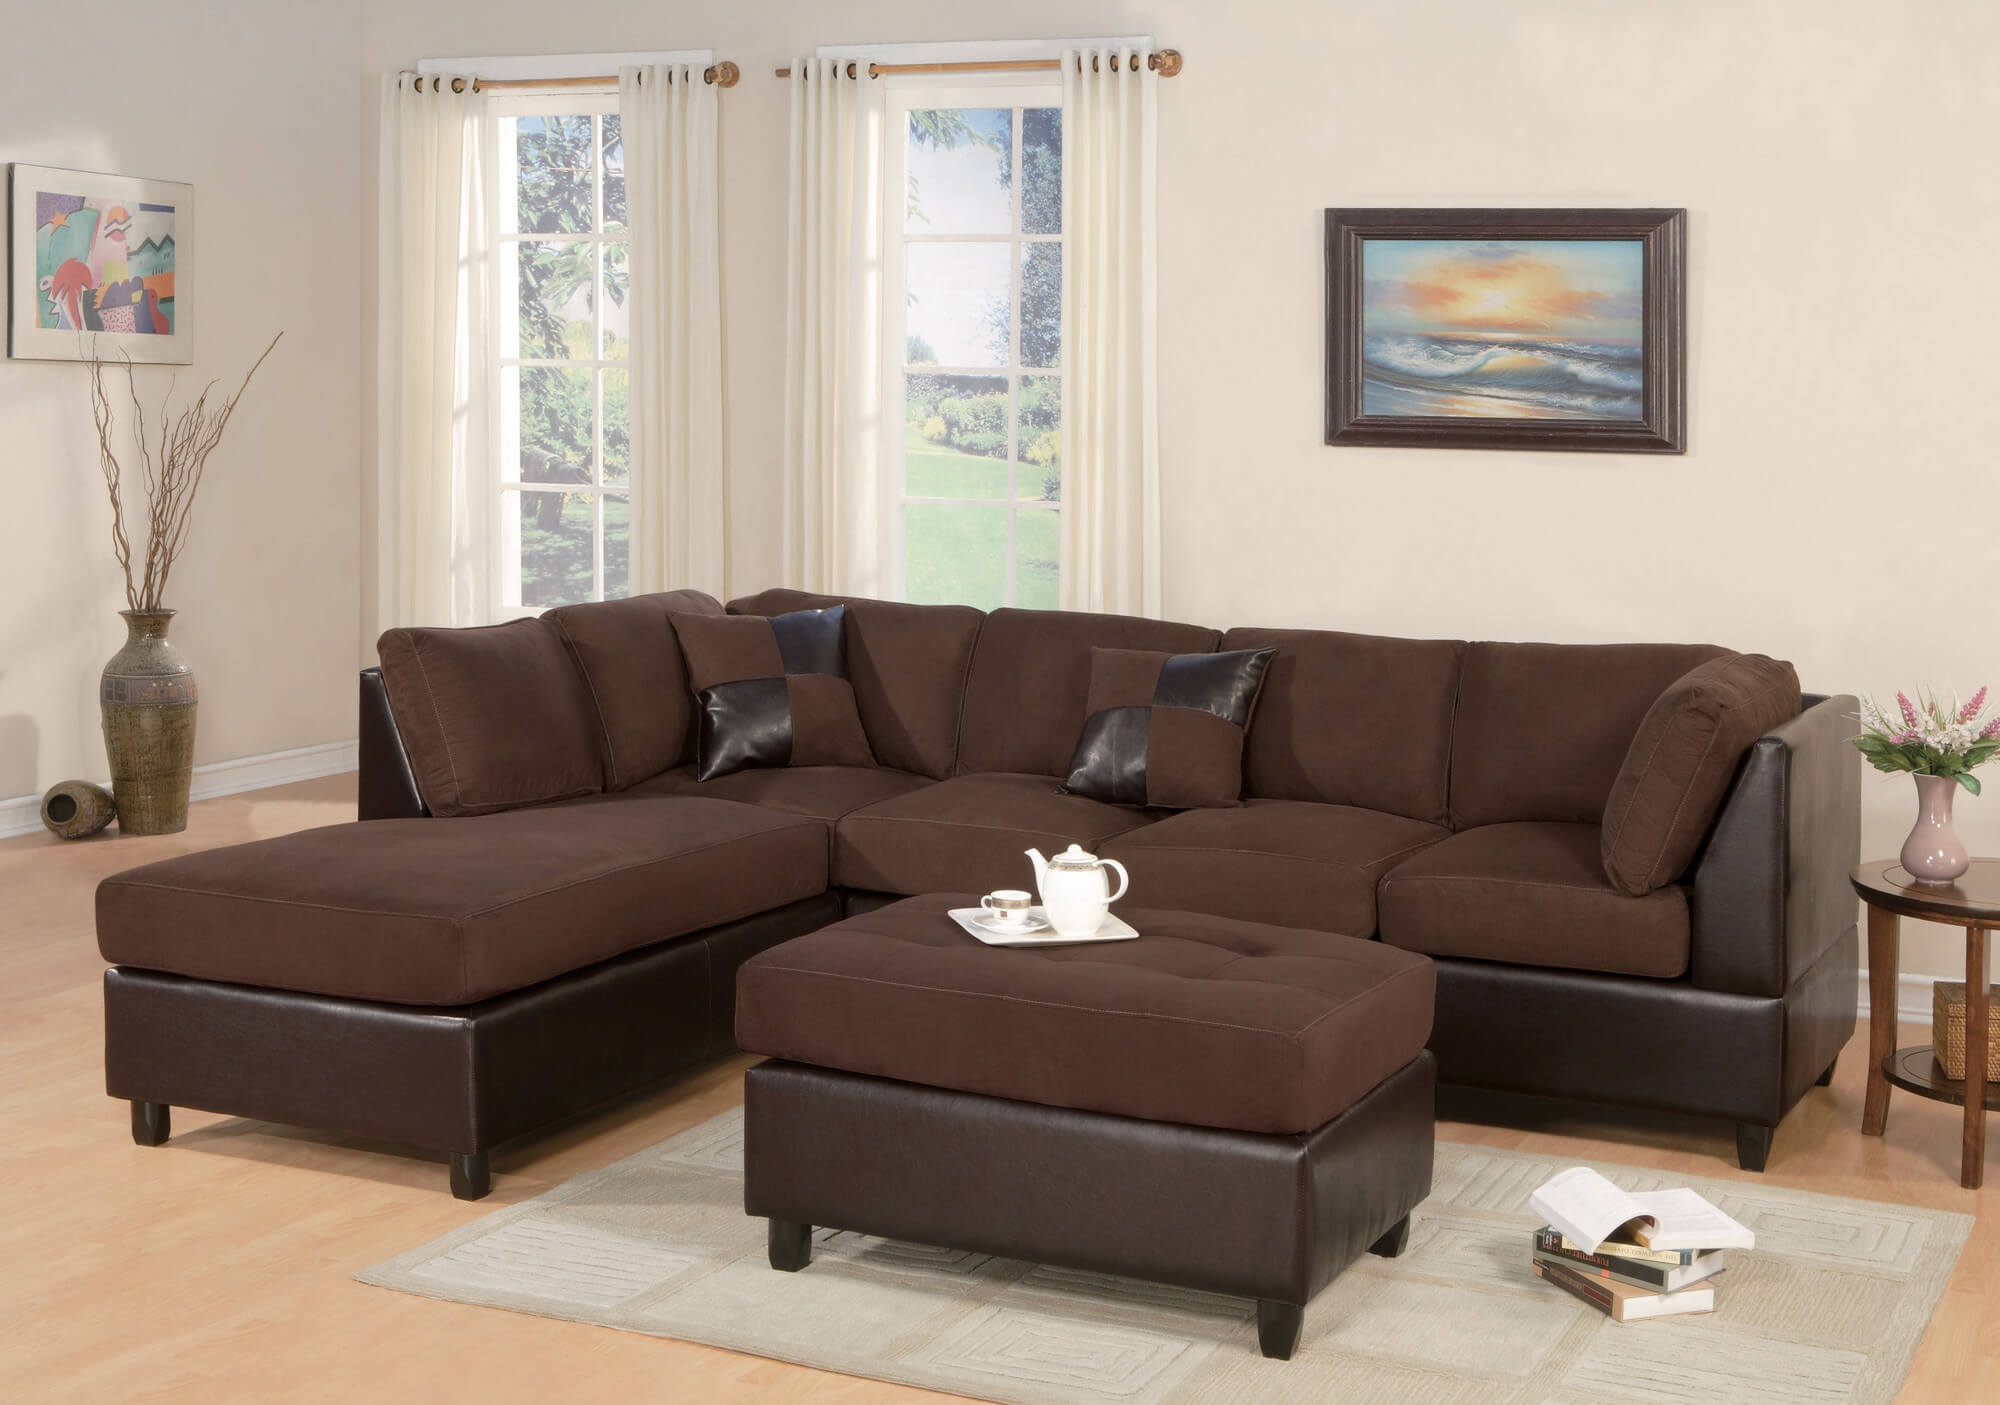 7 Seat Sectional Sofa Sofa Menzilperde For 7 Seat Sectional Sofa (#2 of 12)